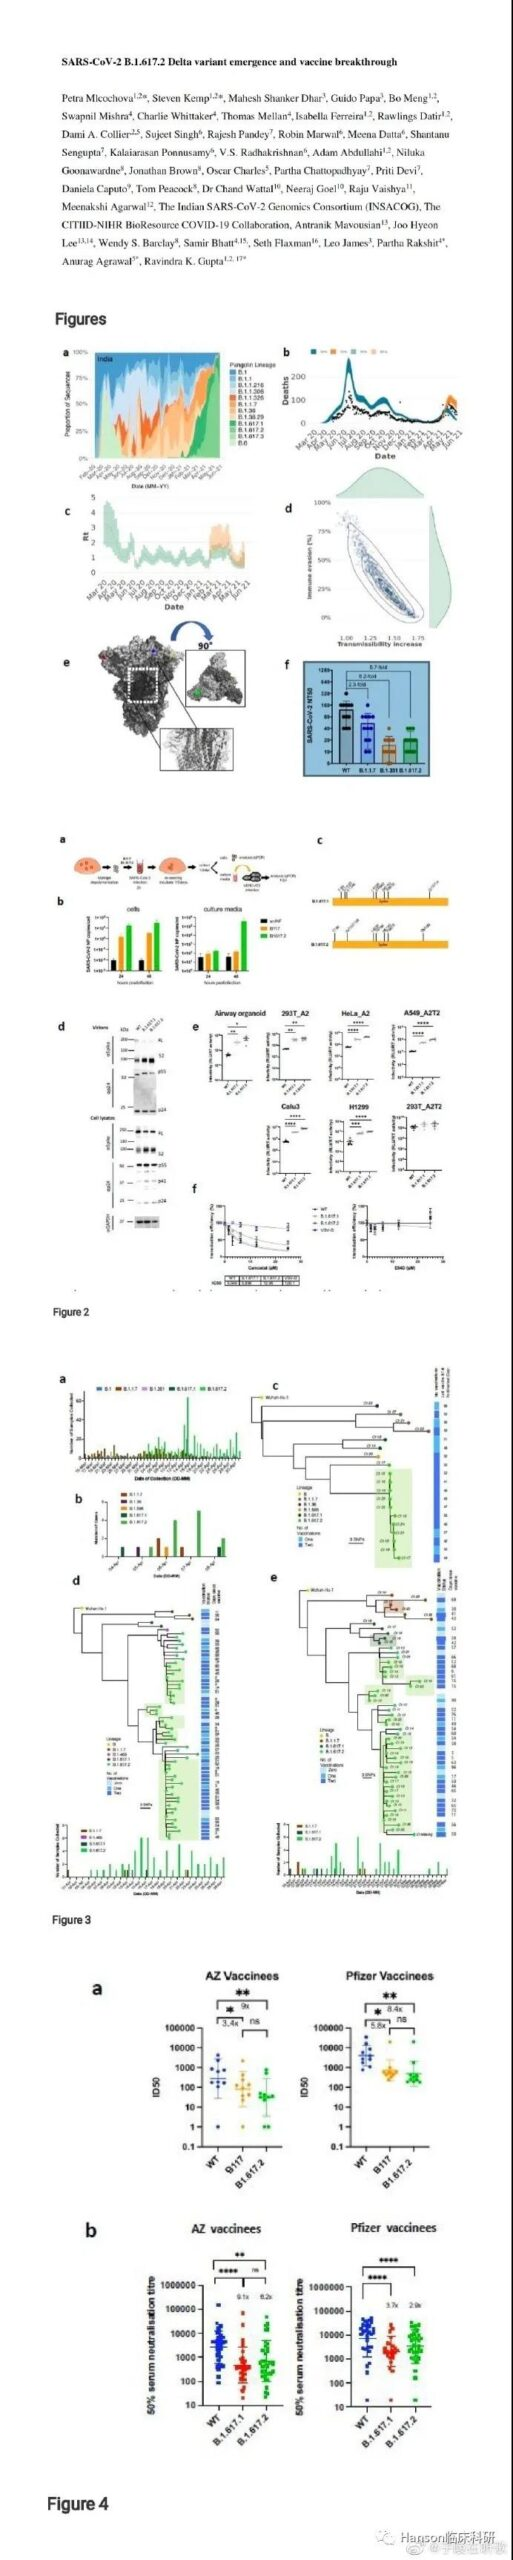 Delta variant of COVID-19 has rapid spread and vaccine resistance